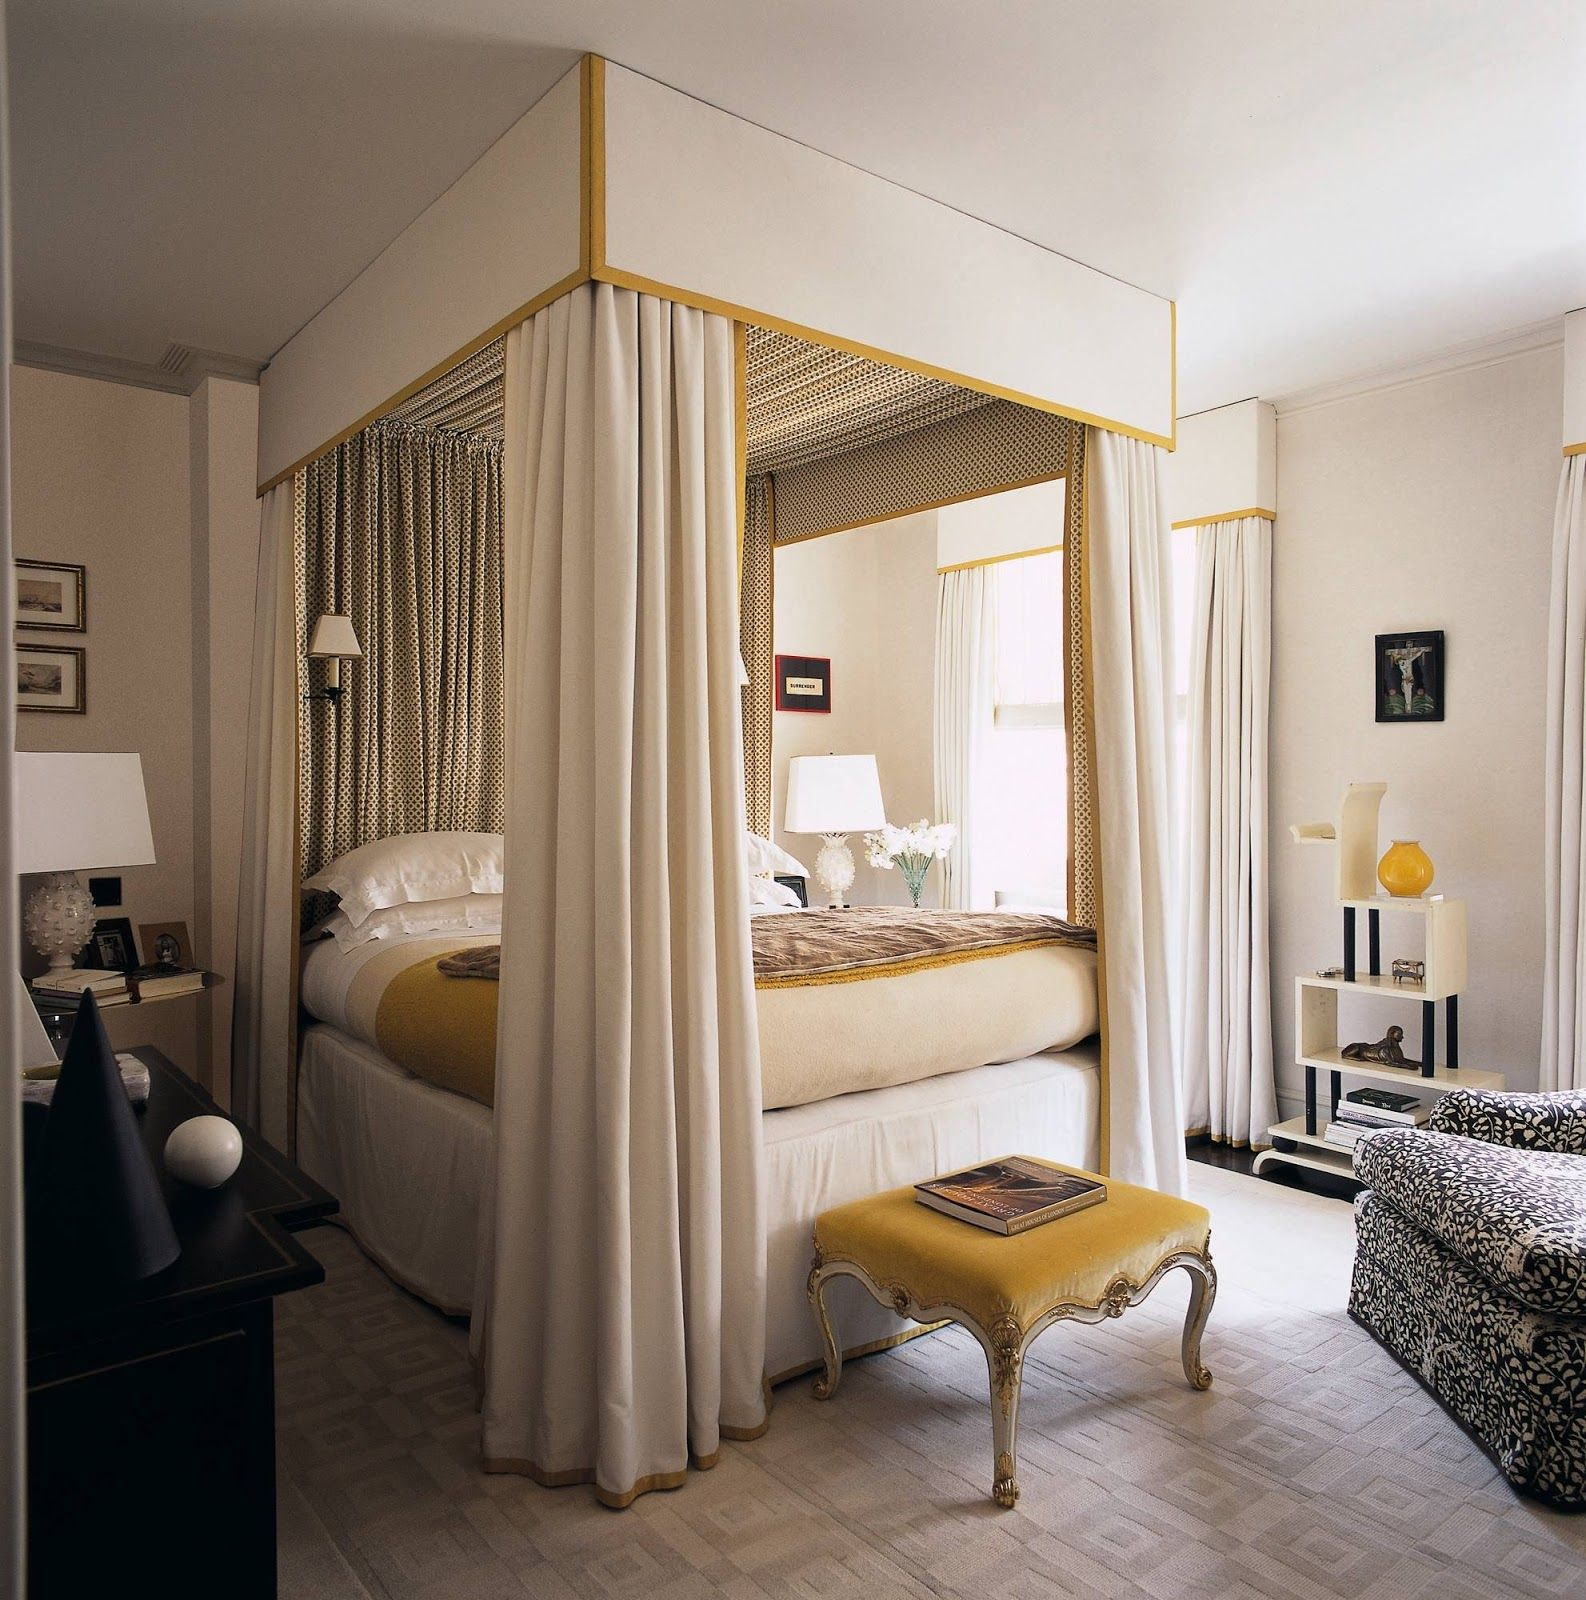 Veere Grenney's bedroom at his new London apartment featured in the October, 2013, issue of The World of Interiors.